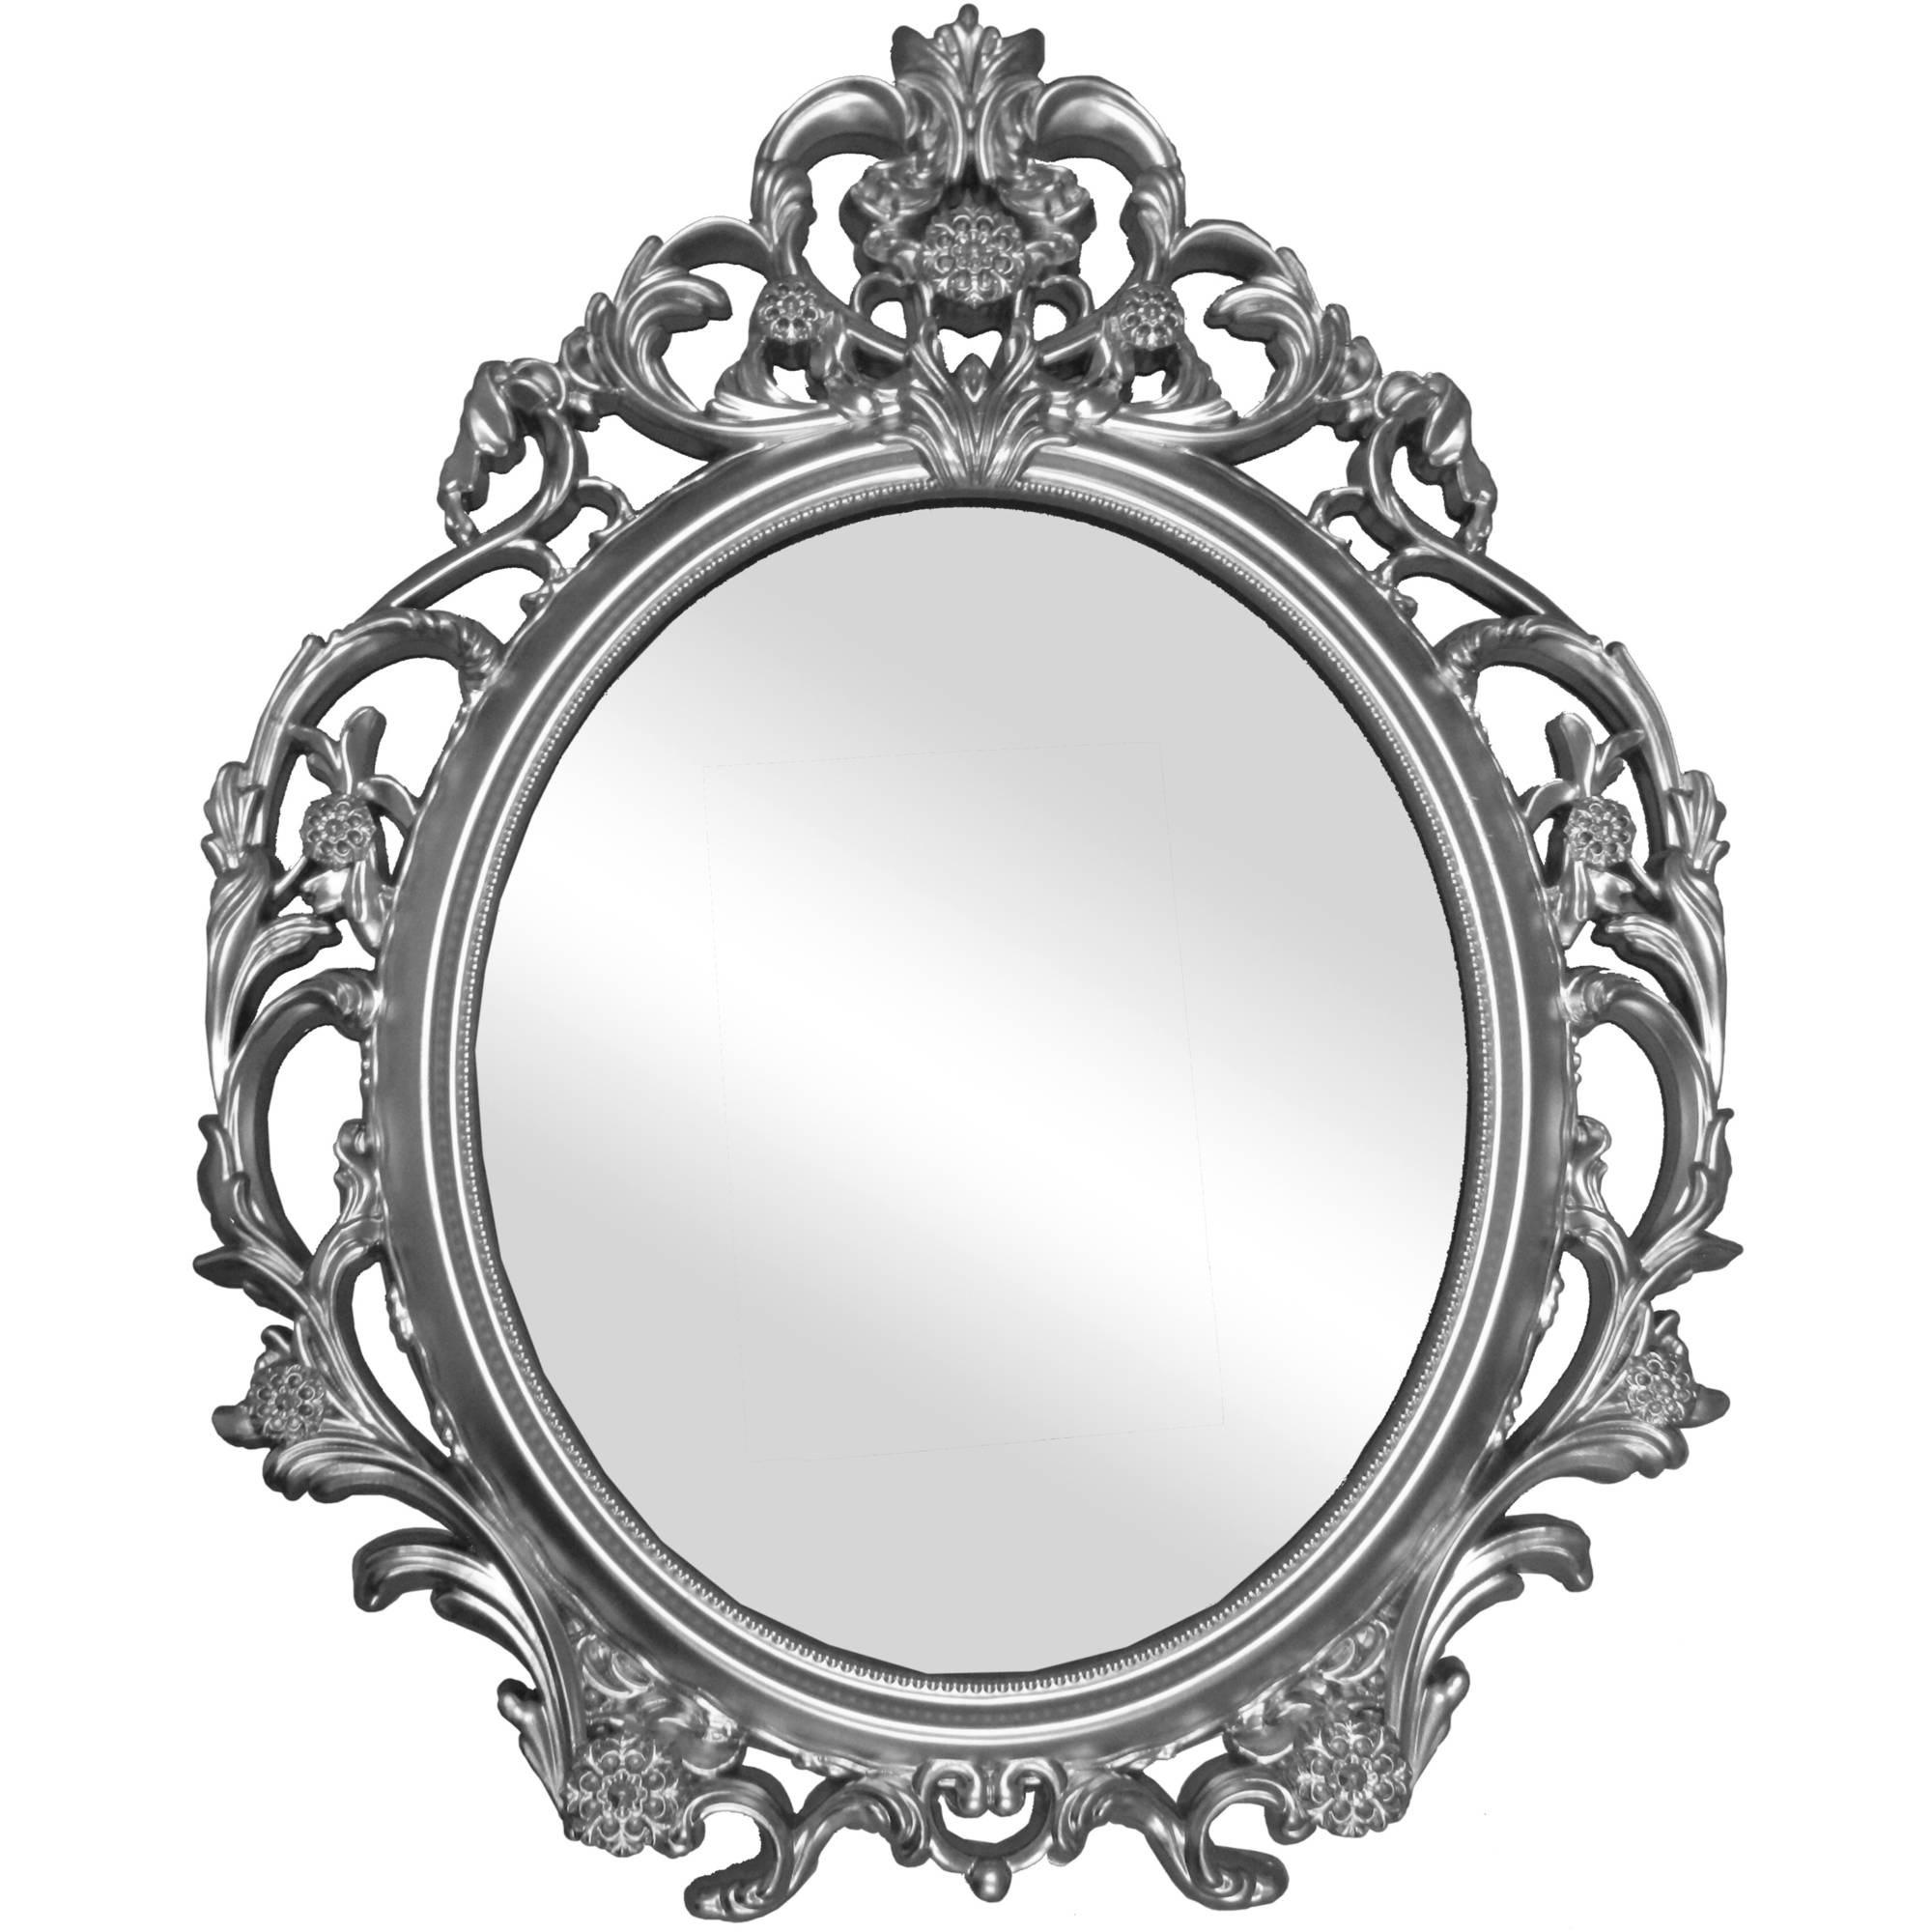 Better Homes & Gardens Ornate Baroque Wall Mirror With Fashionable Baroque Wall Mirrors (View 6 of 20)